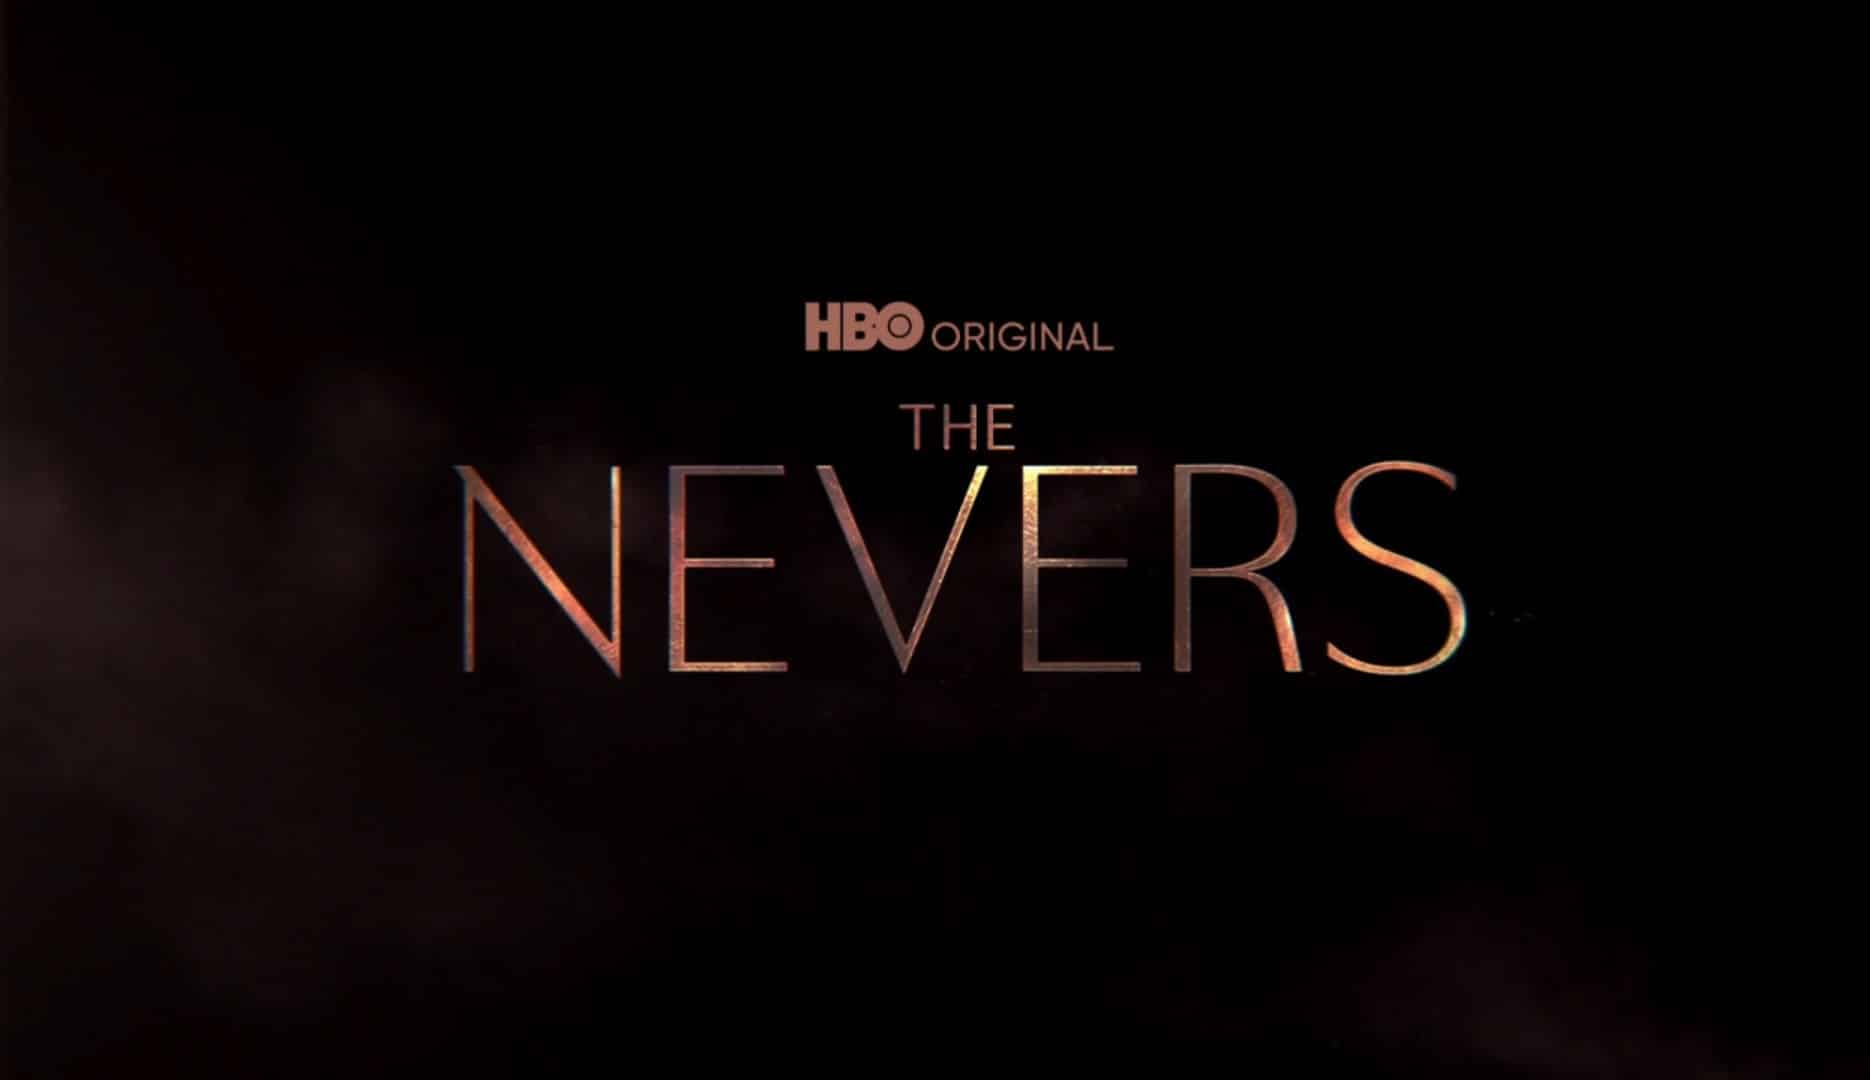 Alternate Title Card for The Nevers